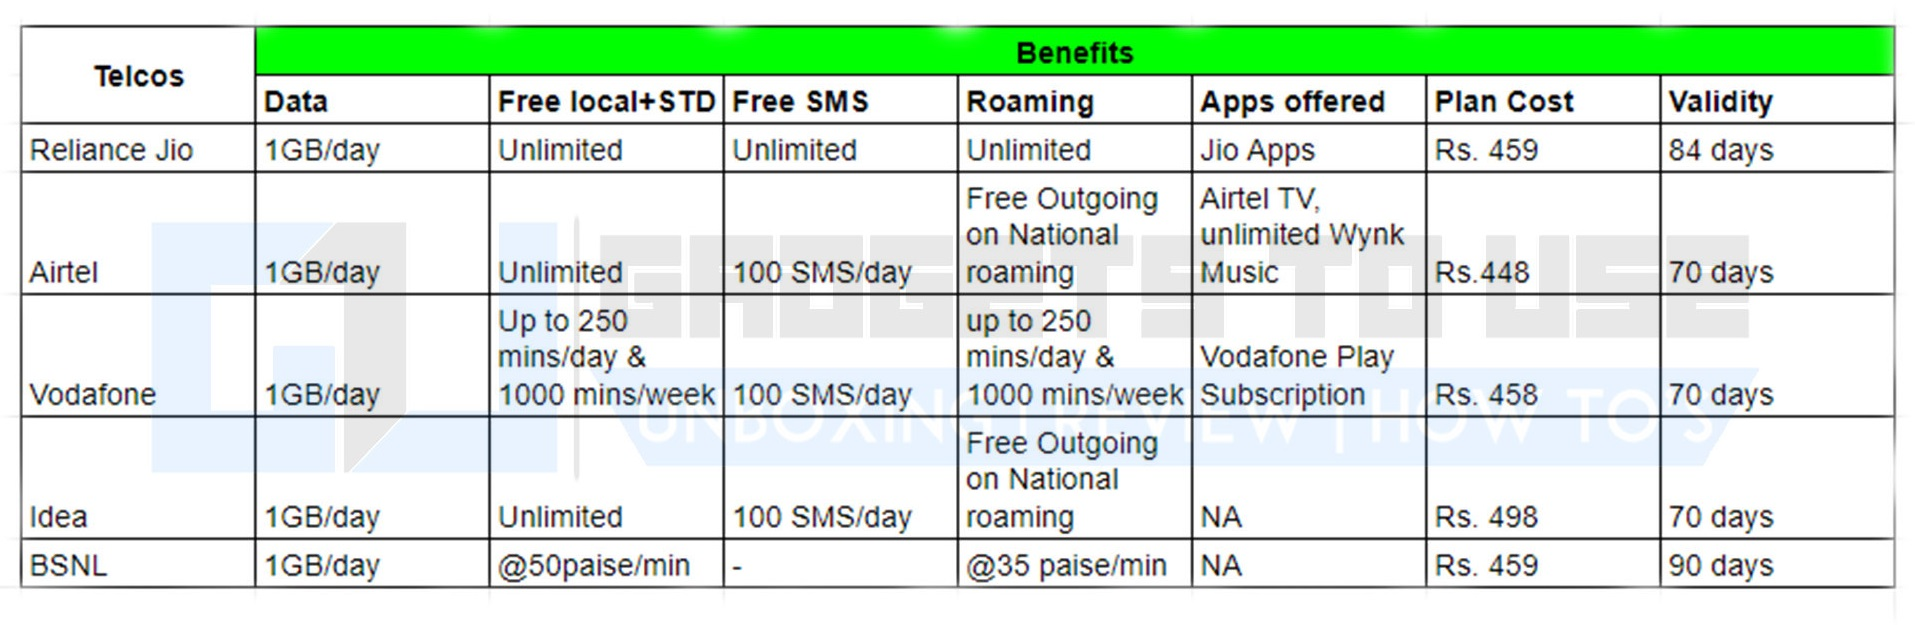 Best 1GB per day plans compared: Jio, Airtel, Vodafone, Idea, and BSNL